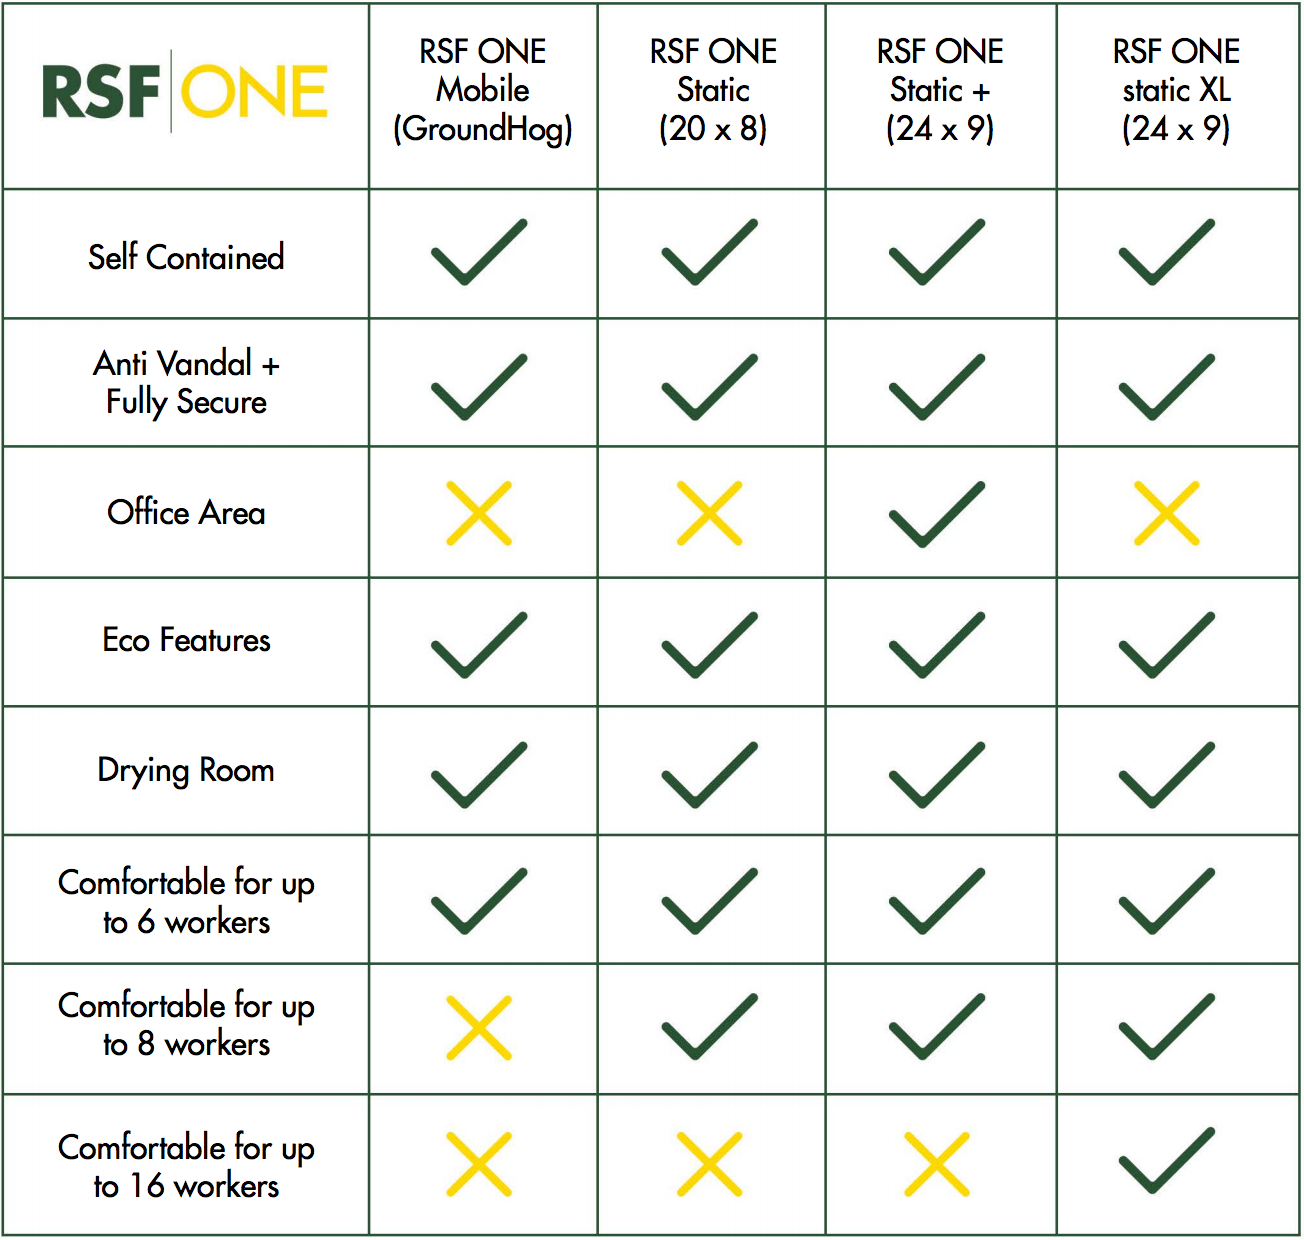 rsf one static xl welfare unit feature comparison